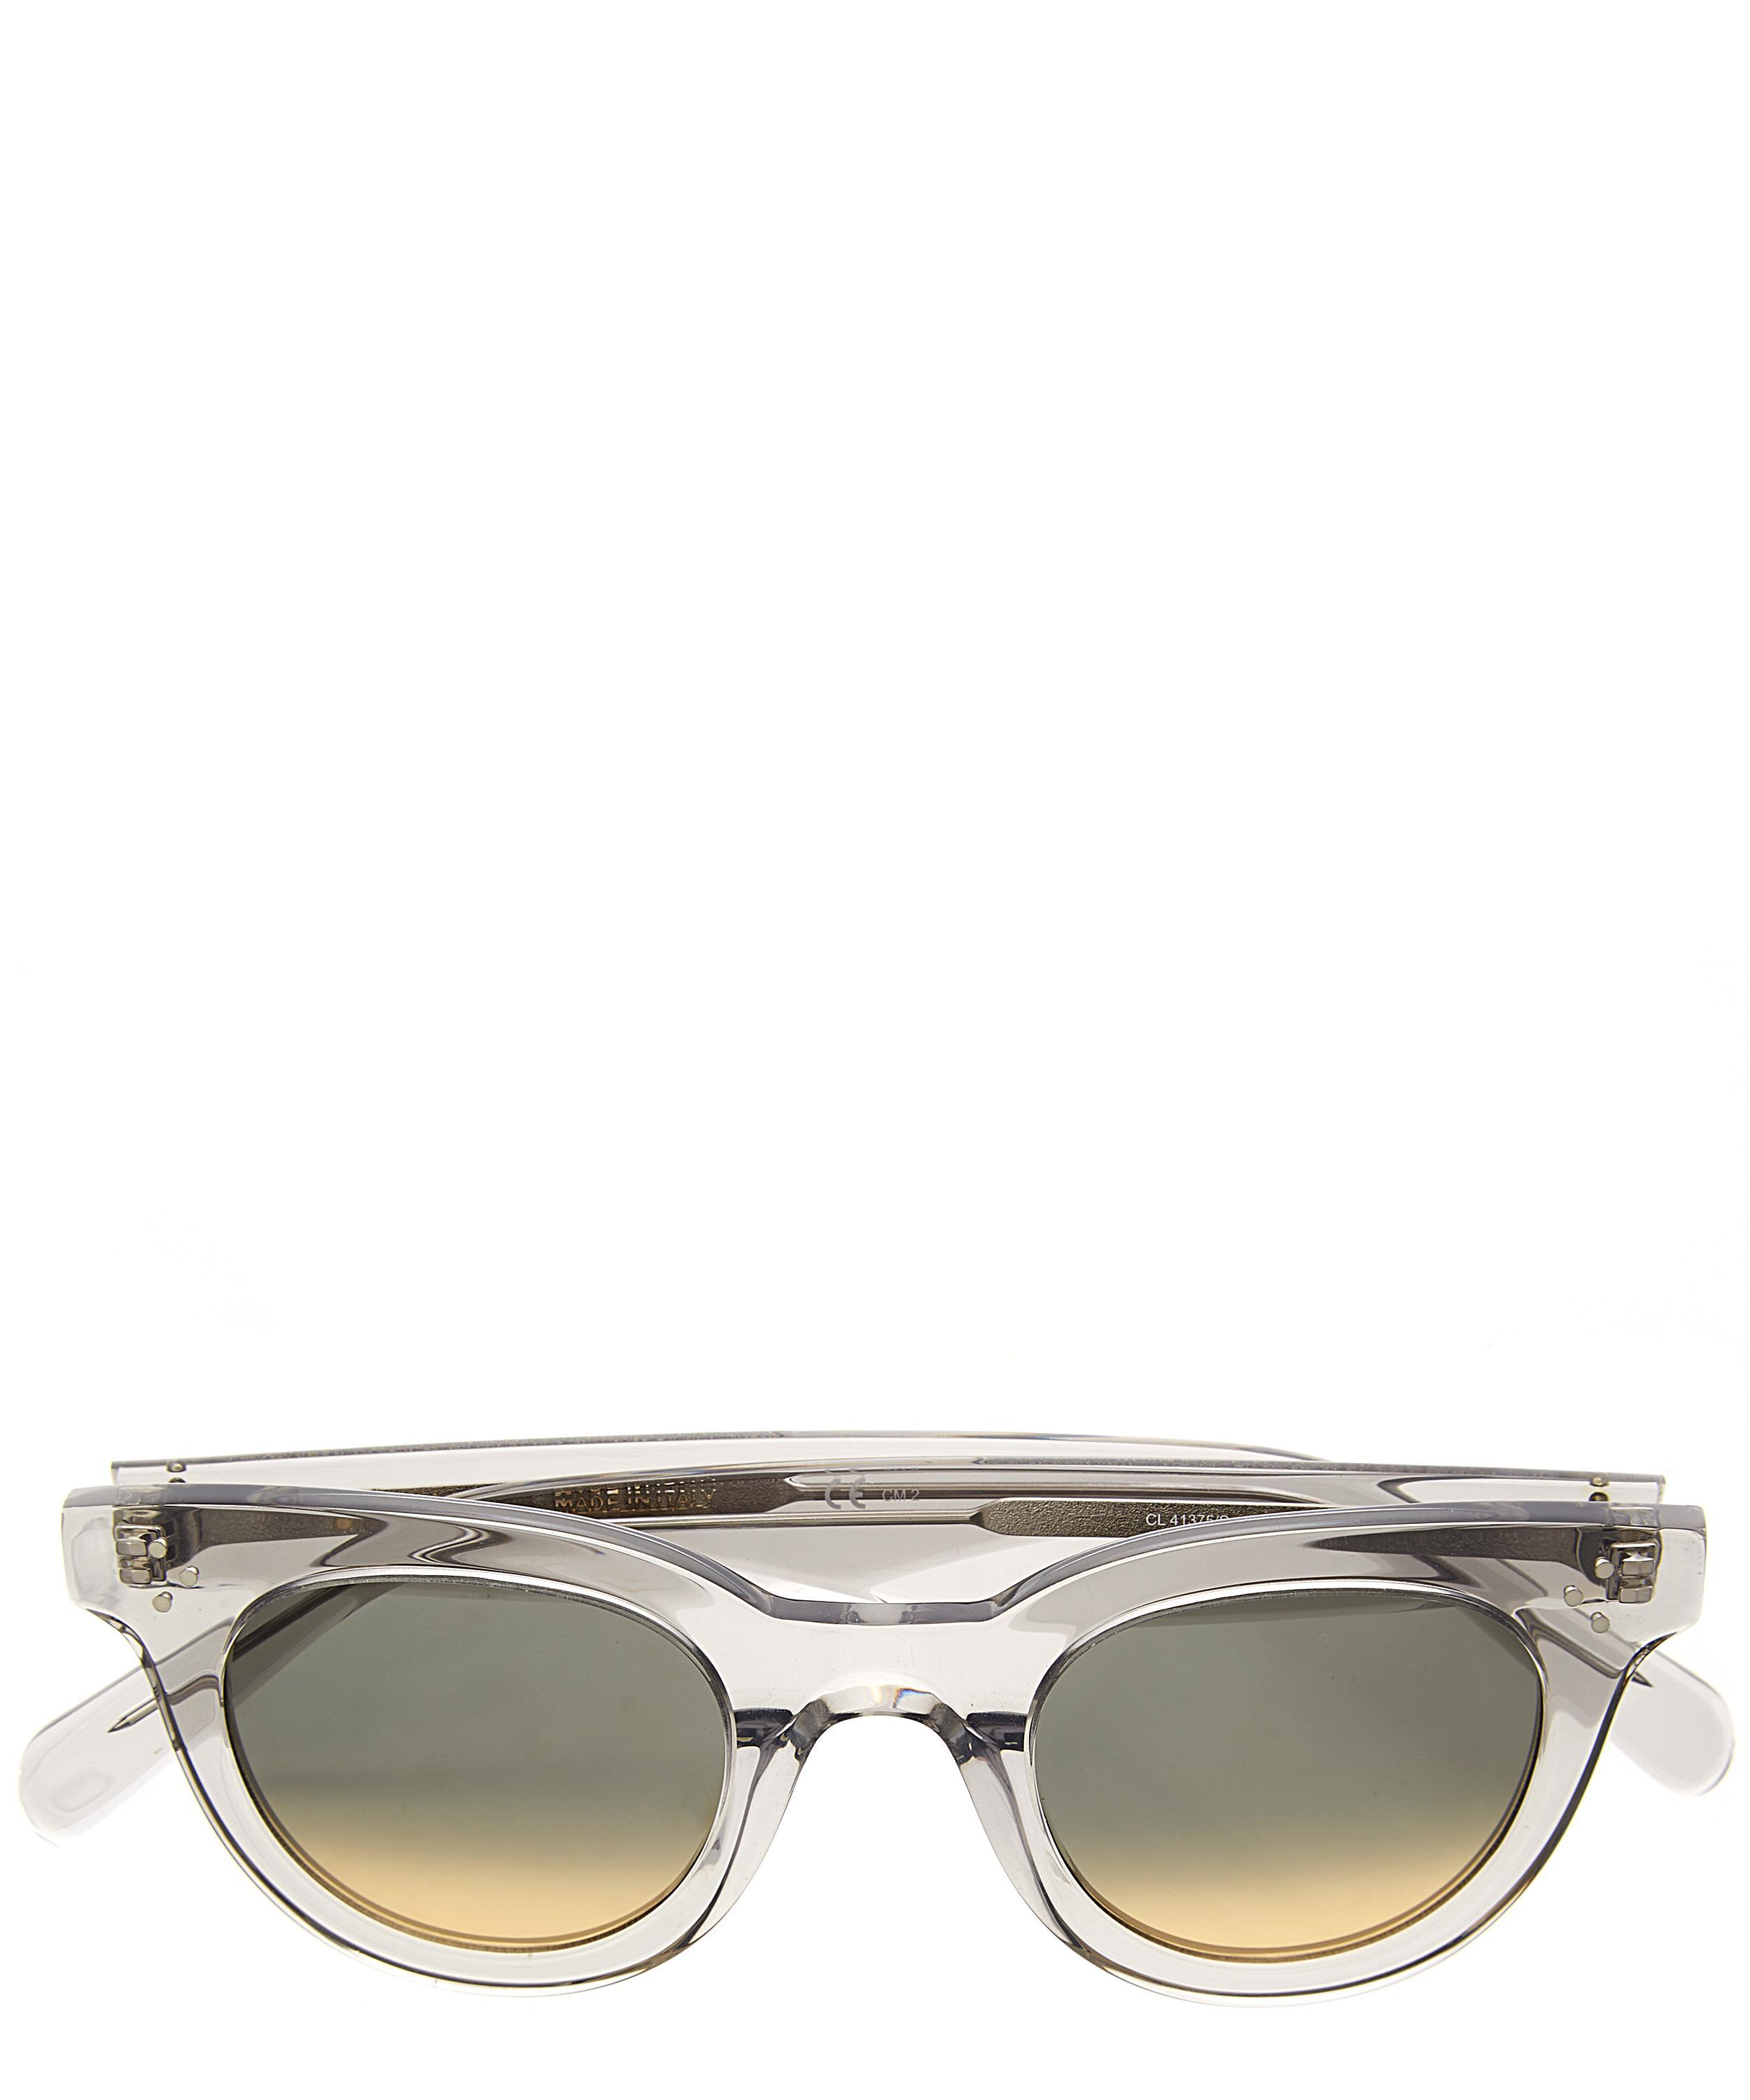 Celine Baby Audrey Sunglasses in Crystal (Metallic)